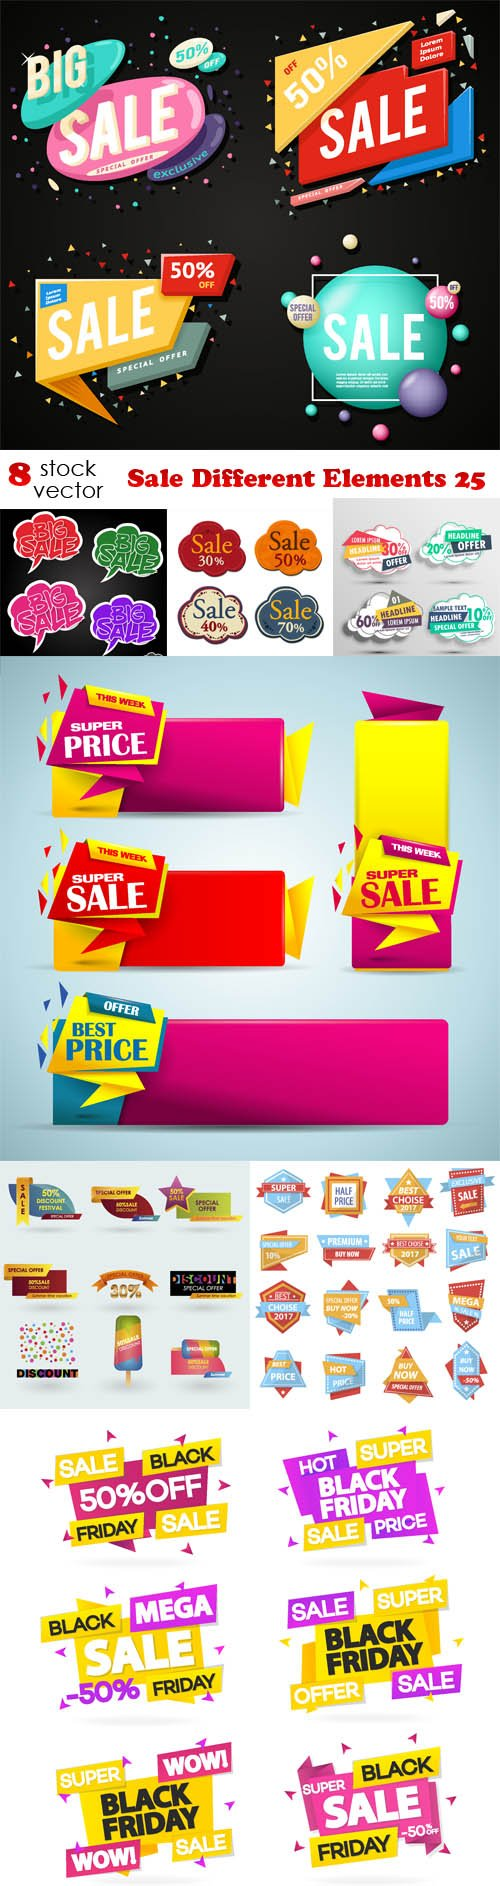 Vectors - Sale Different Elements 25